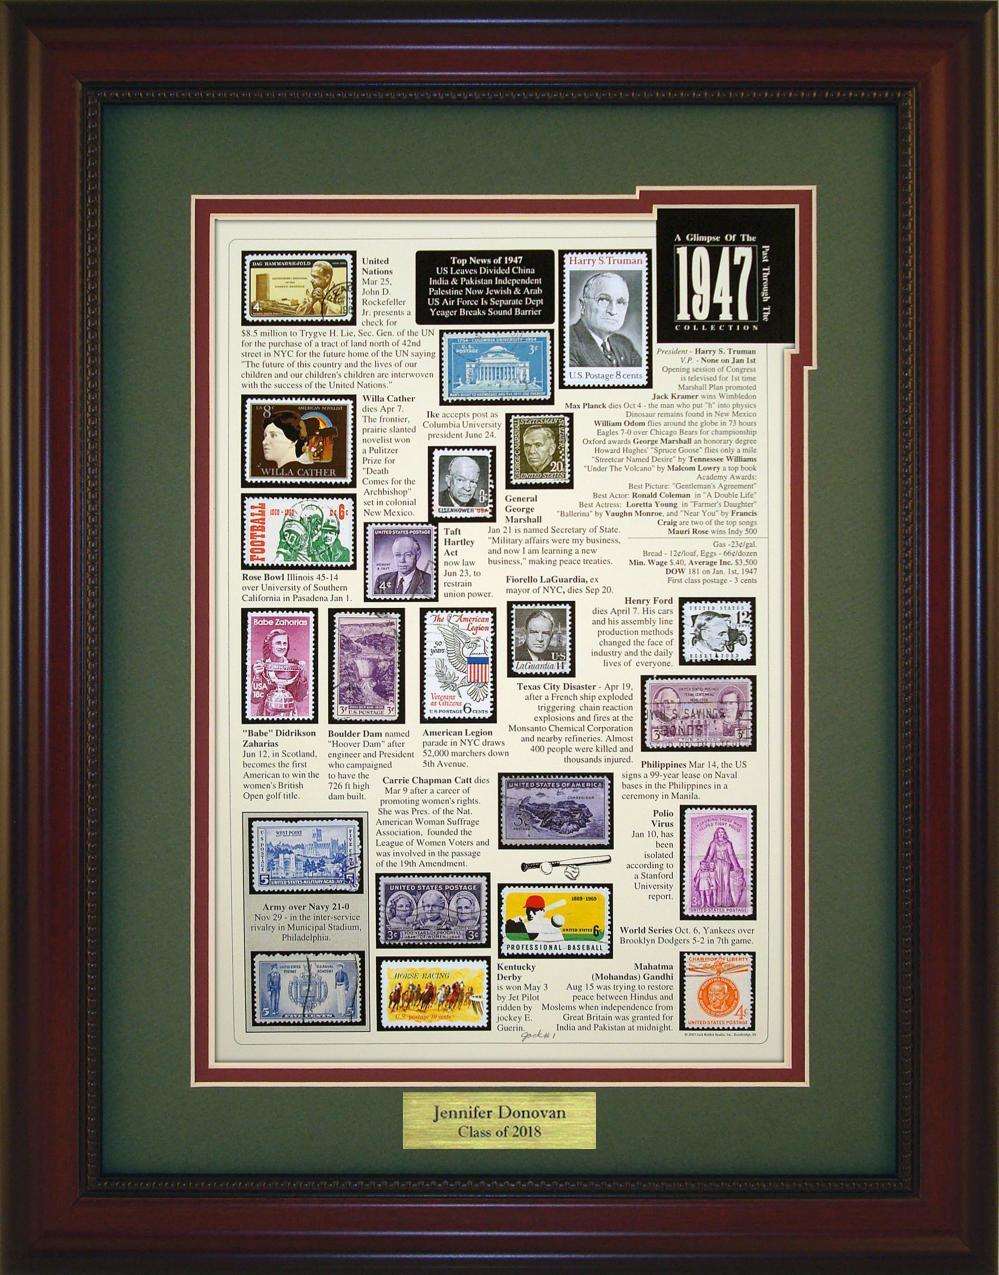 Year 1947 - Personalized Unique Framed Gift